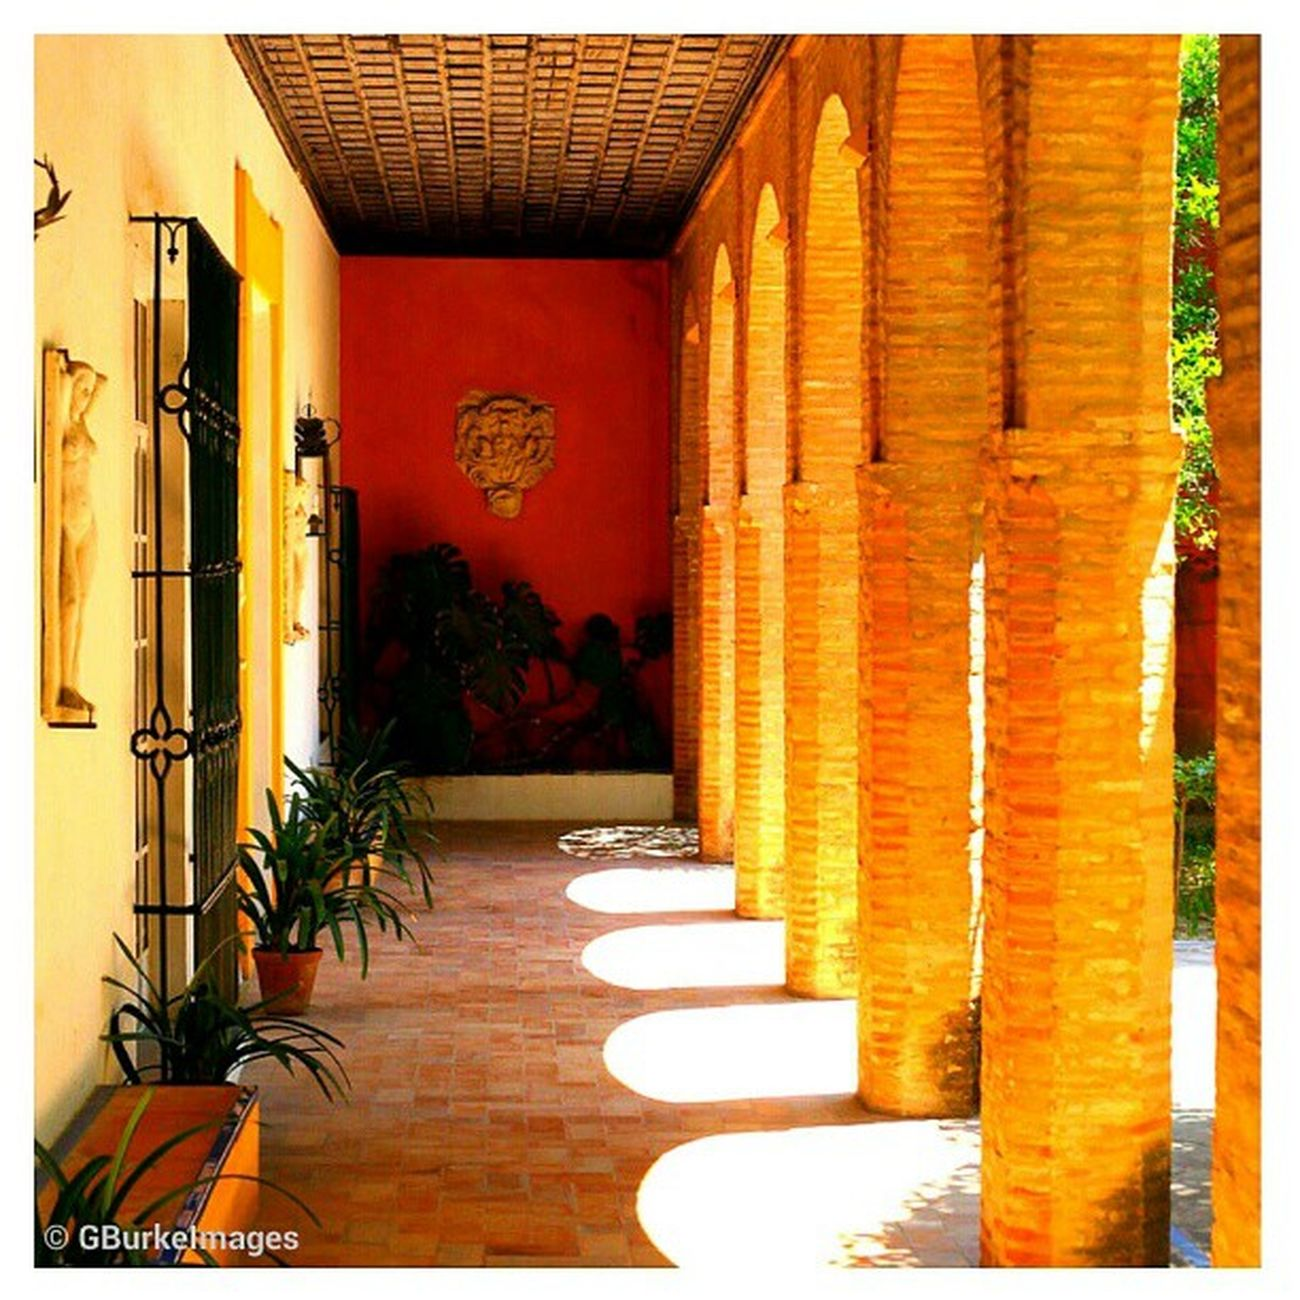 Portico at Alcazar Castle, Seville, Spain. Sevilla Seville Instagramsevilla España Spain travel travelphotos ampt_community squaready iccolorful instagood instagramhub instagramdaily pictureoftheday photooftheday